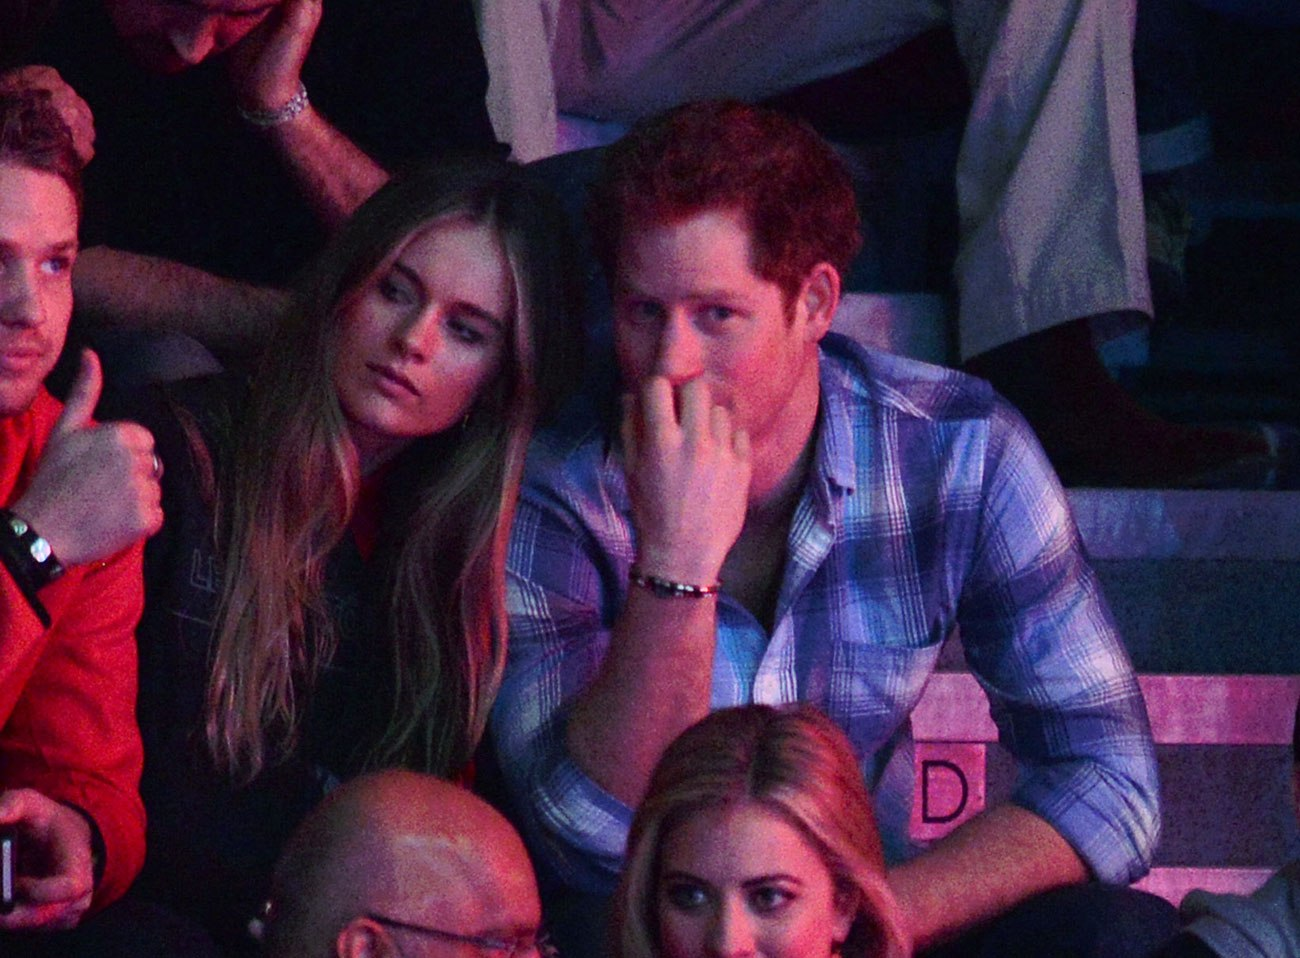 cressida-bonas-bored-prince-harry-first-official-engagement.sl.3.prince-harry-cressida-bonas-official-together-ss01